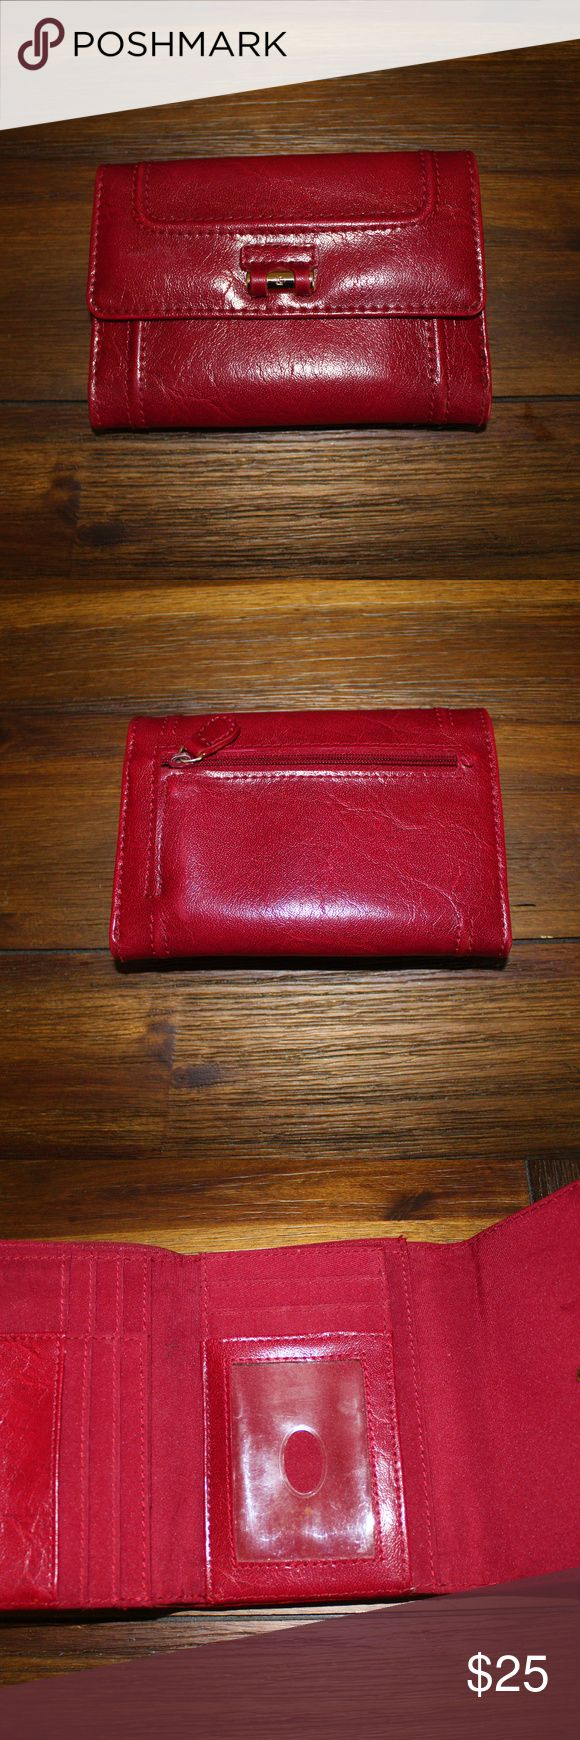 Liz Claiborne Wallet Liz Claiborne women's red wallet, used, like new Liz Claiborne Bags Wallets